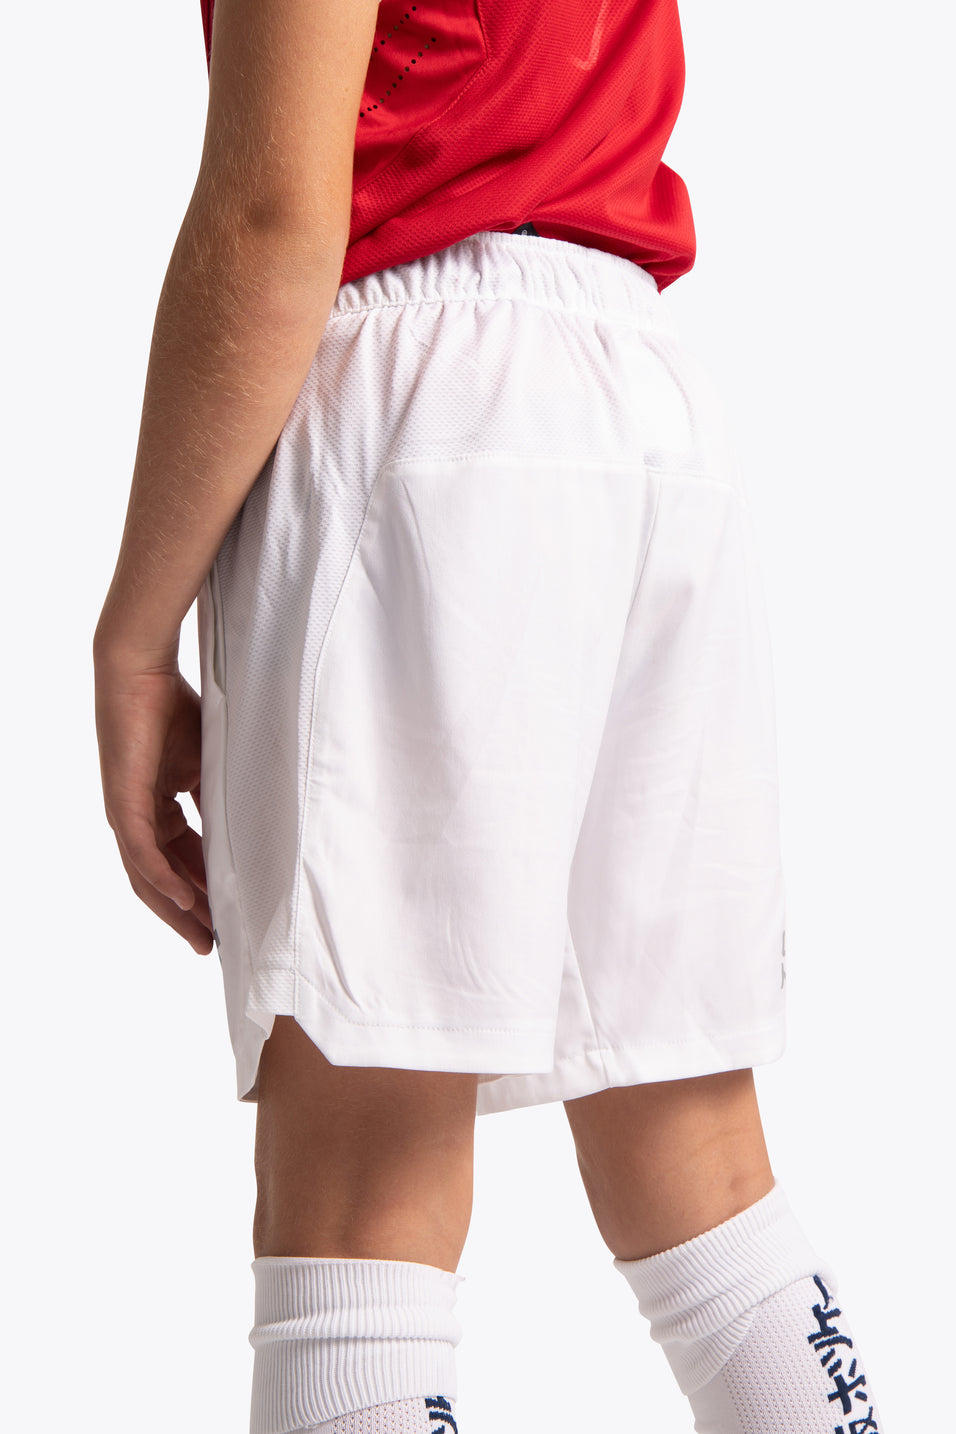 Hurley Deshi Short - White